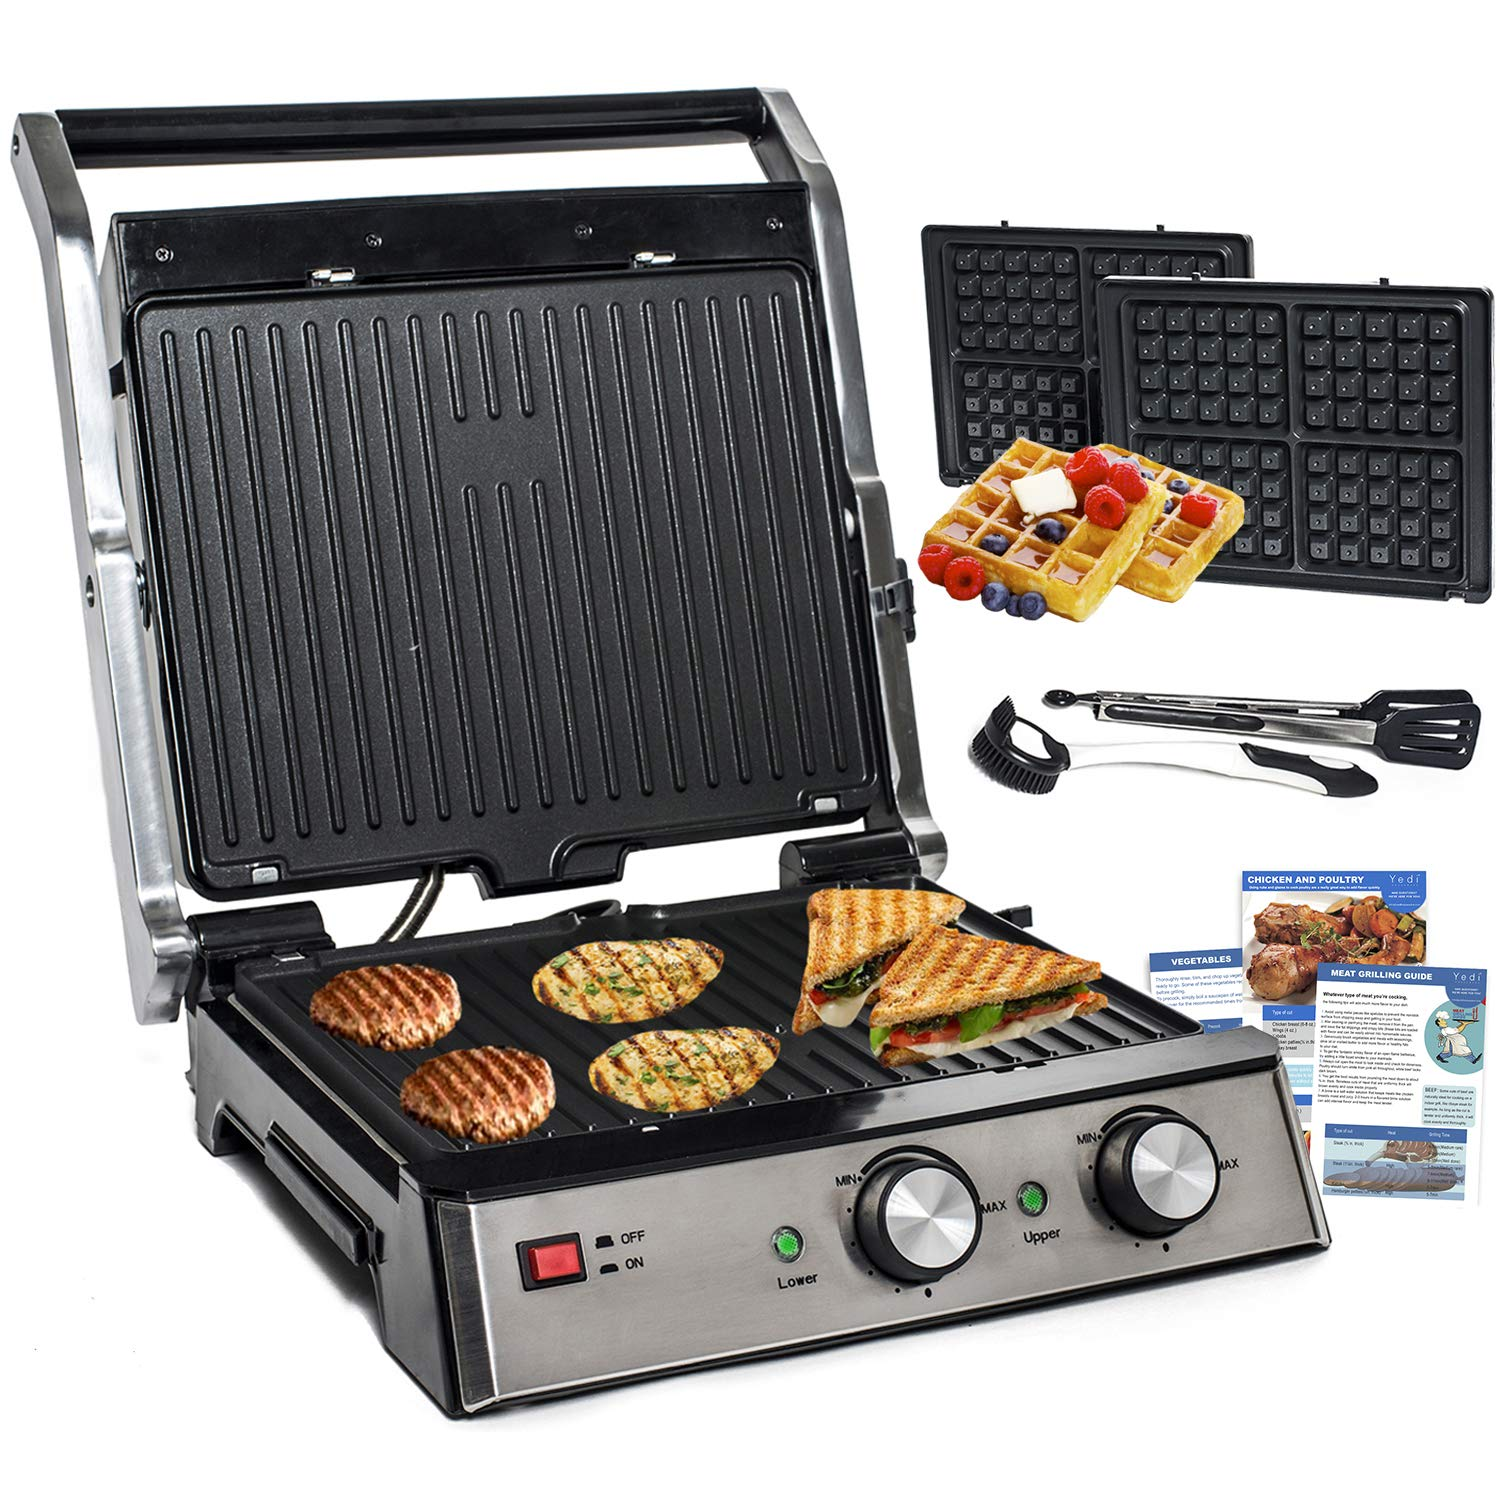 Total Package 6-in-1 Grill, Waffle Maker, Griddle, Panini Press with Deluxe Accessory Kit by Yedi Houseware